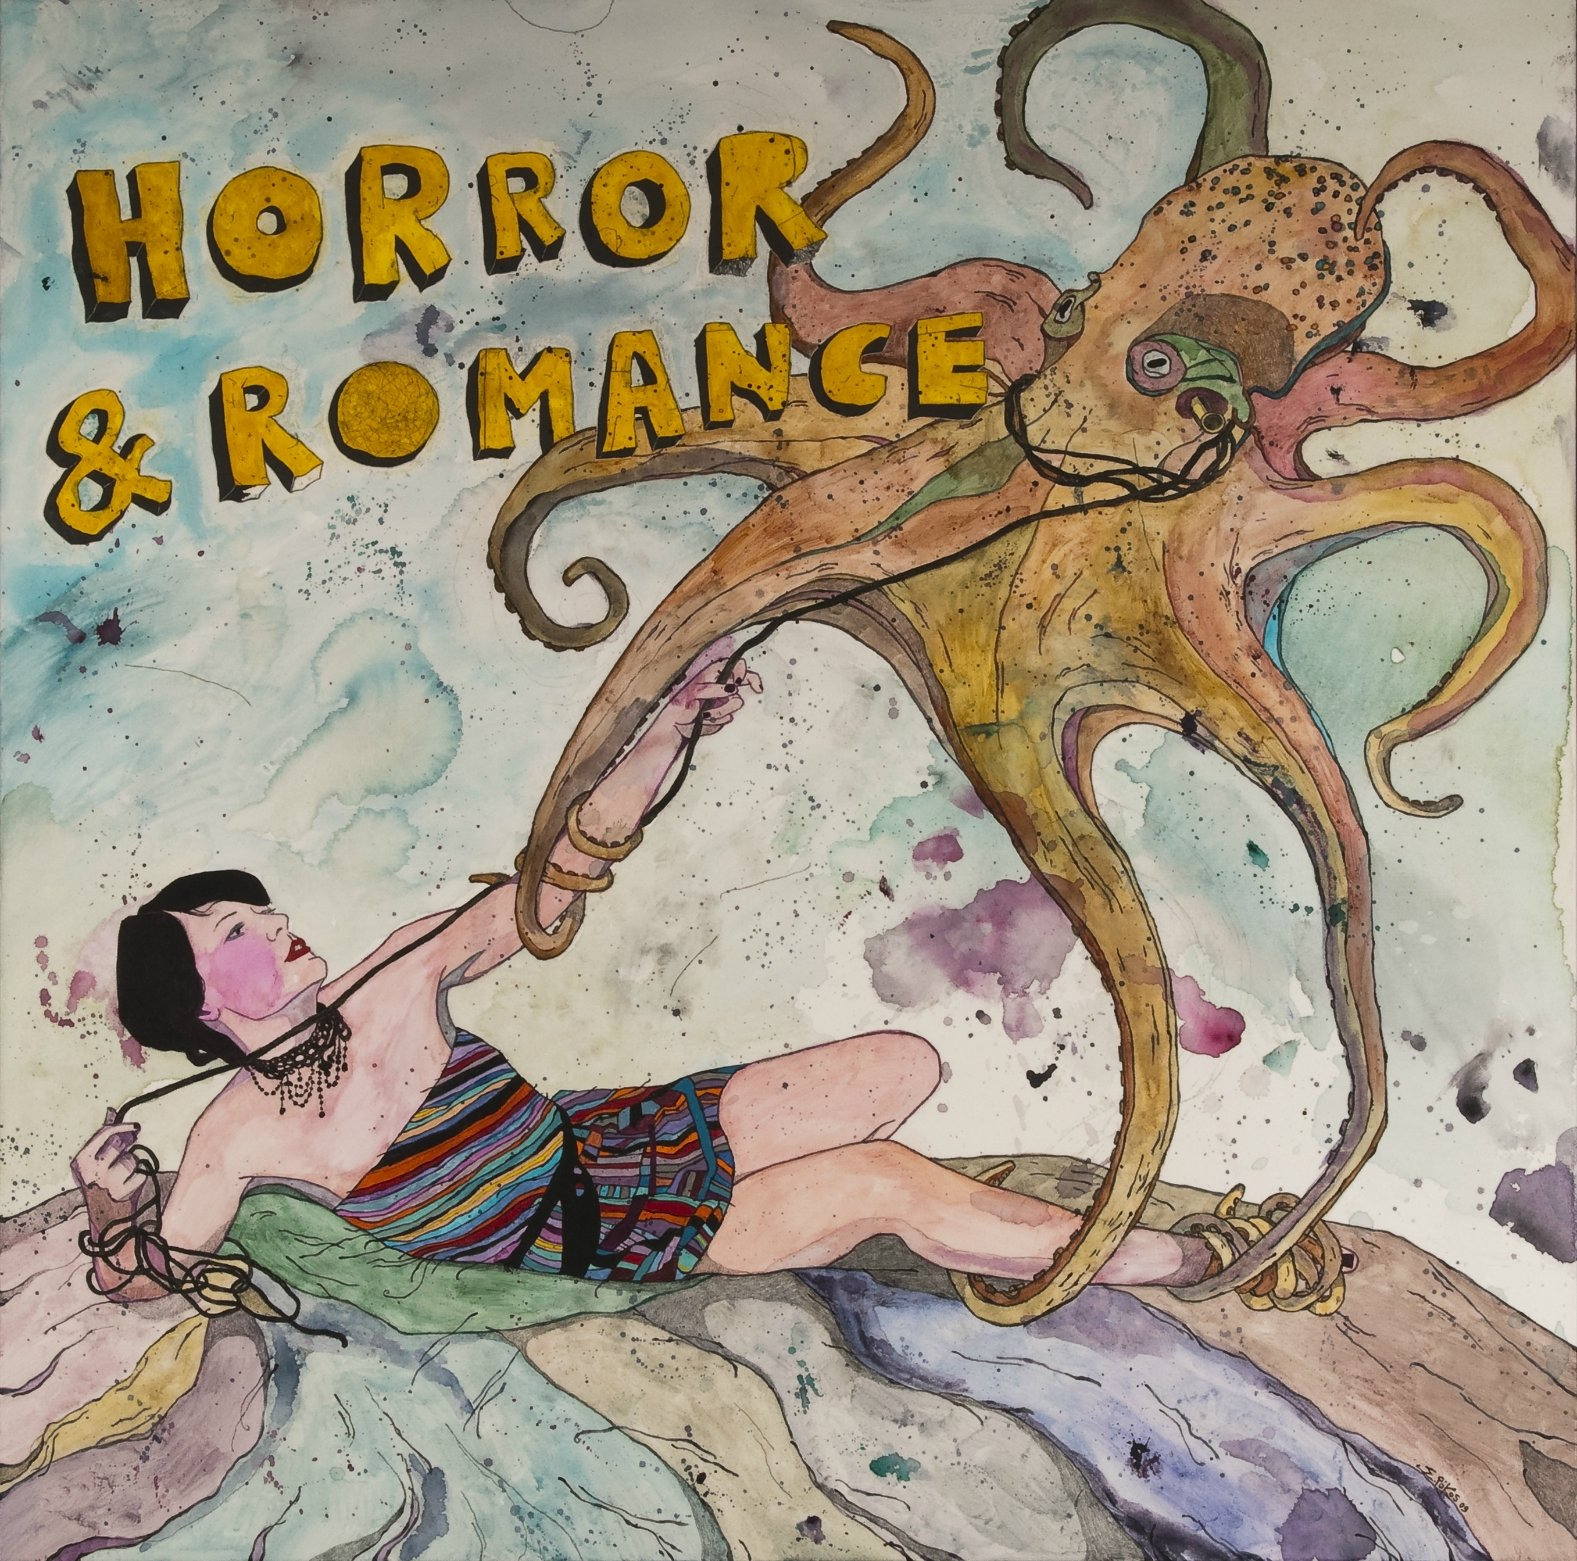 Horror and Romance, 2010